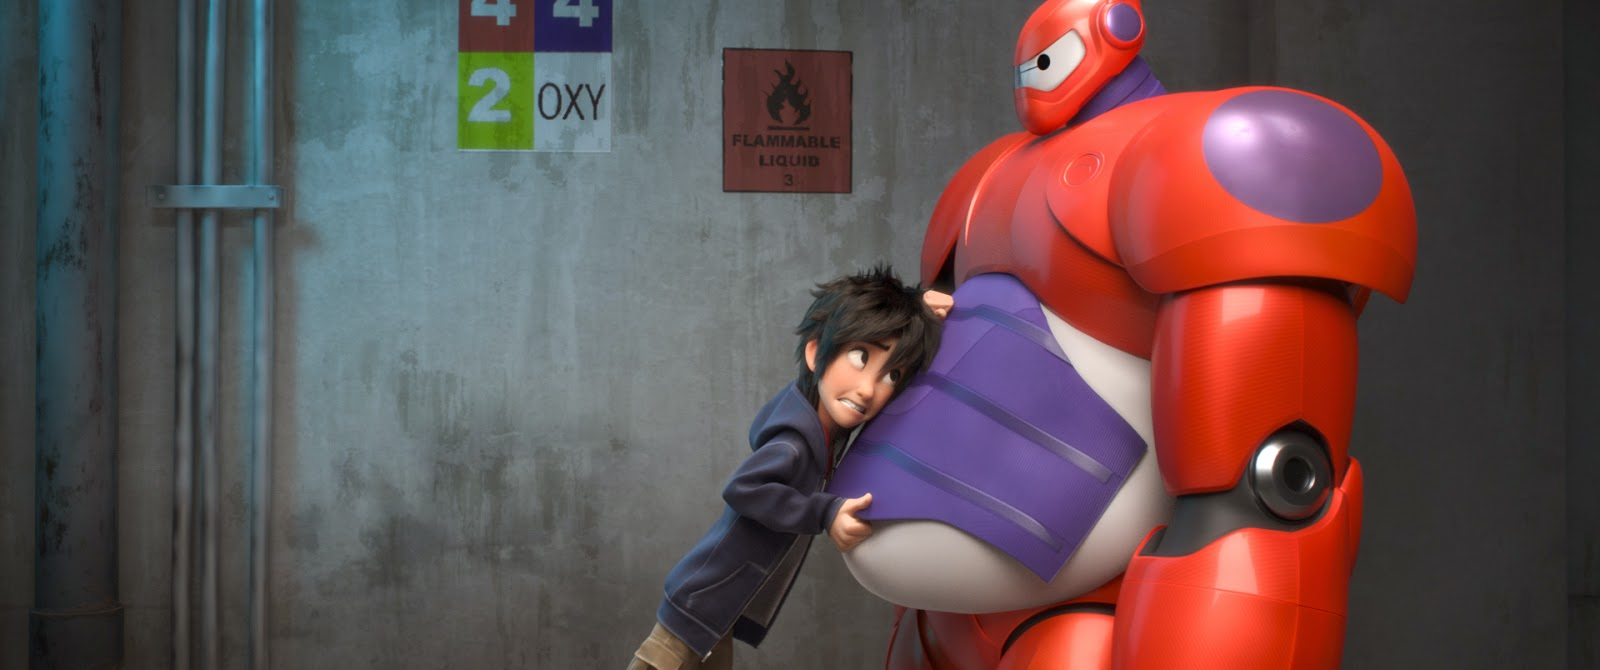 big hero 6 hiro baymax wallpapers - Disney Movie Big Hero 6 (2015) Desktop & iPhone